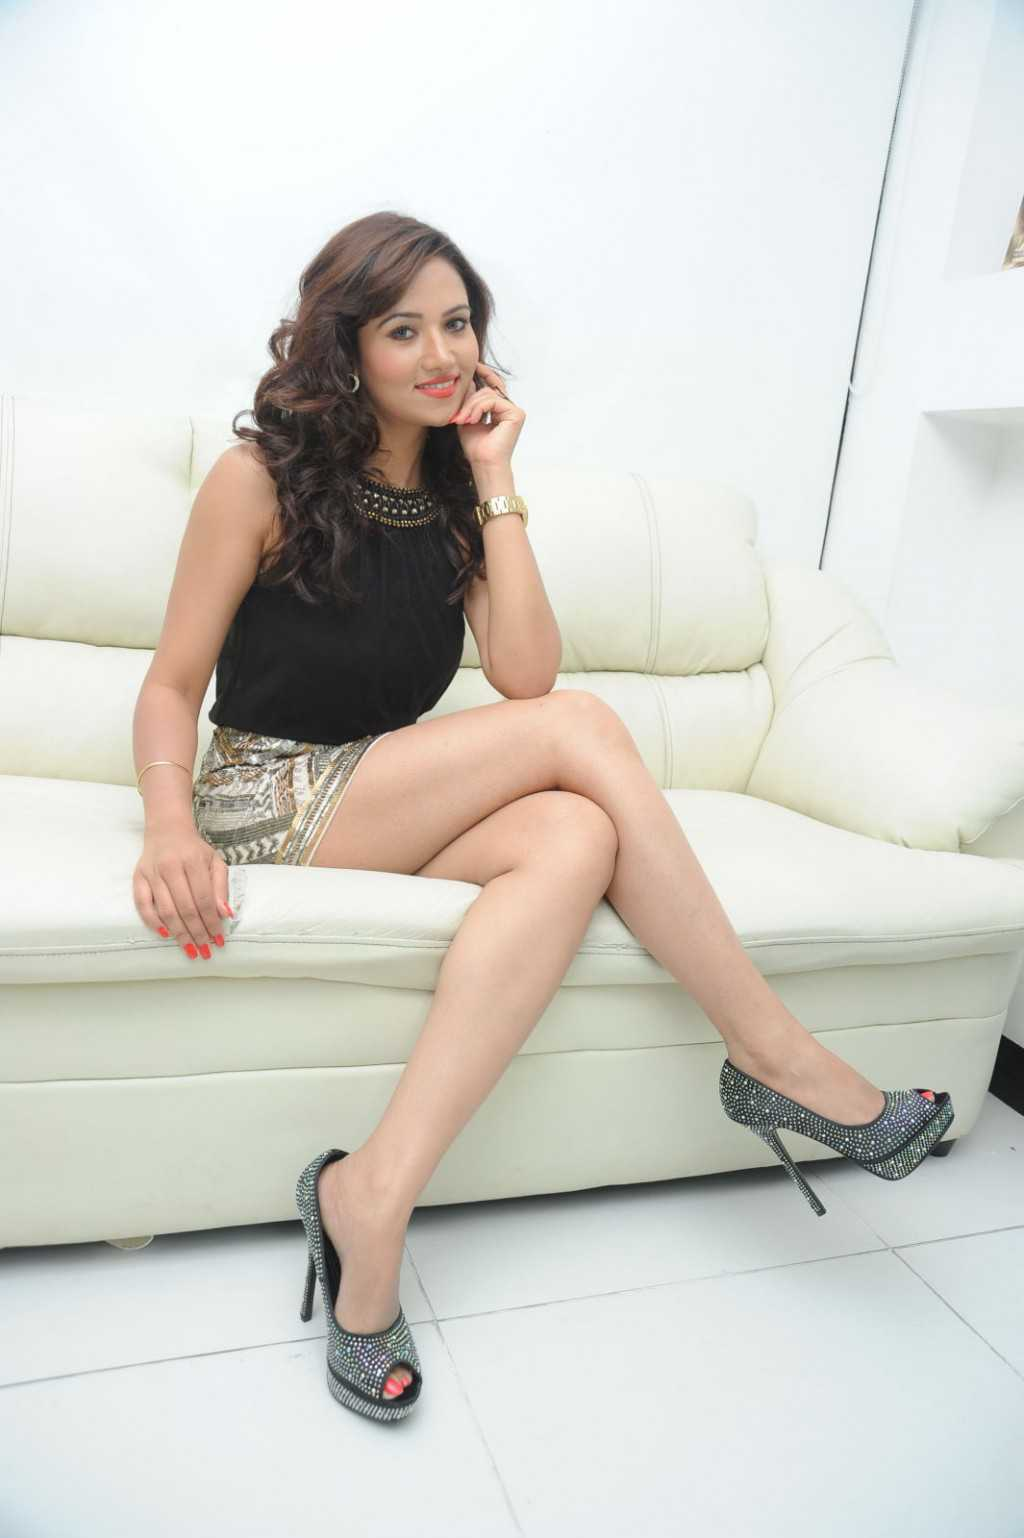 South-Indian-Actress-Preeti-Rana-Hot-Thigh-Show-Photos-4